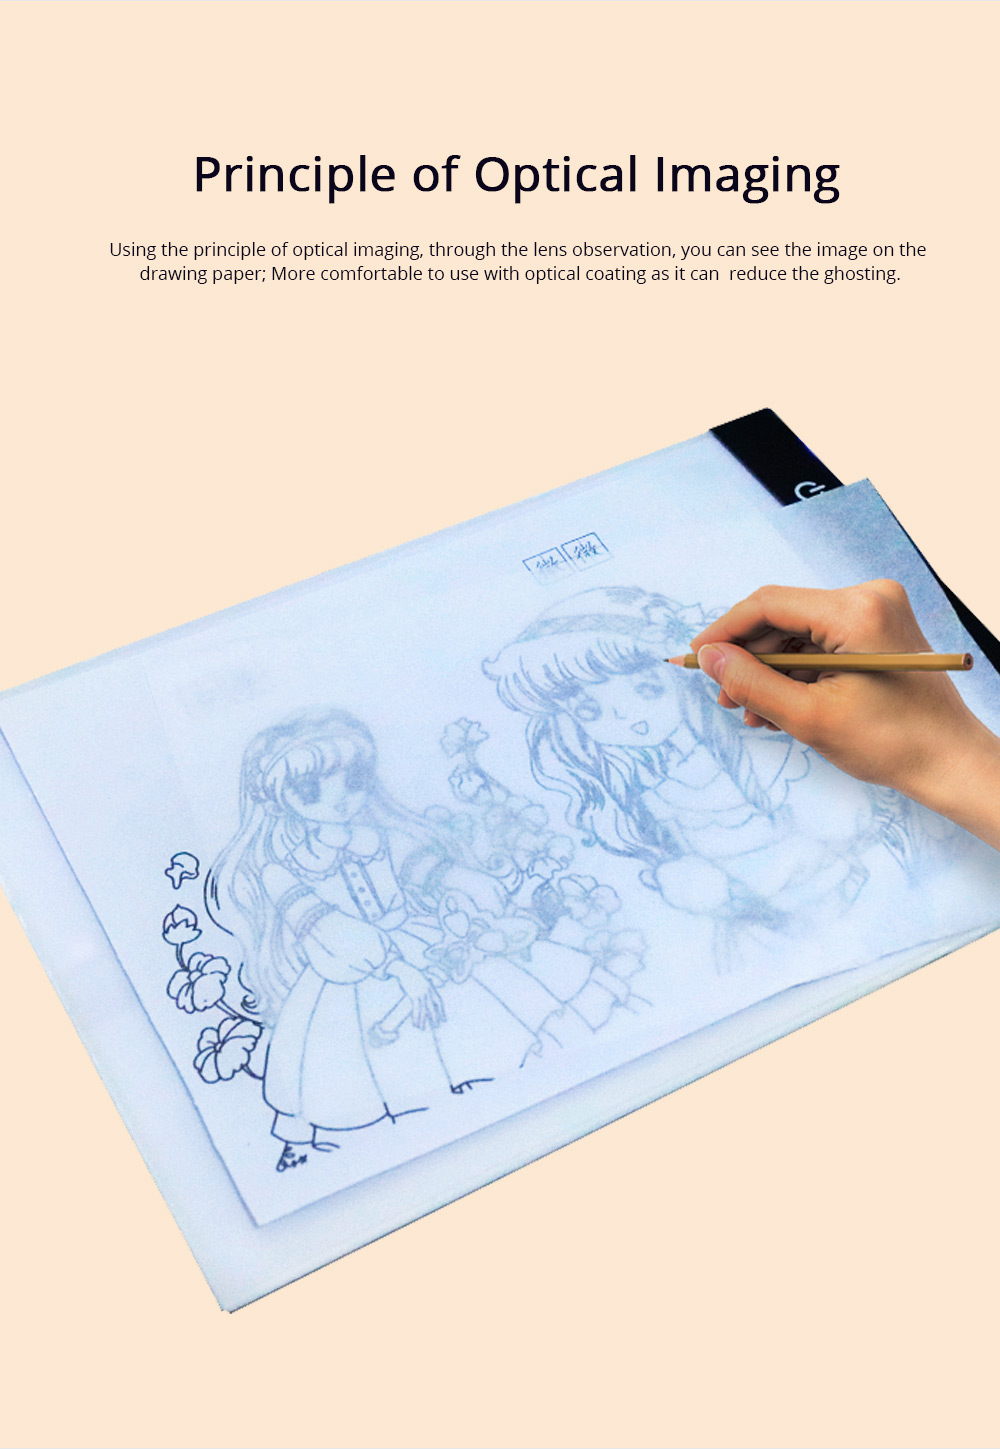 Optical Drawing Board Adjustable Brightness Portable Sketching Template Tool Image Projection Board for Artists Beginners 4